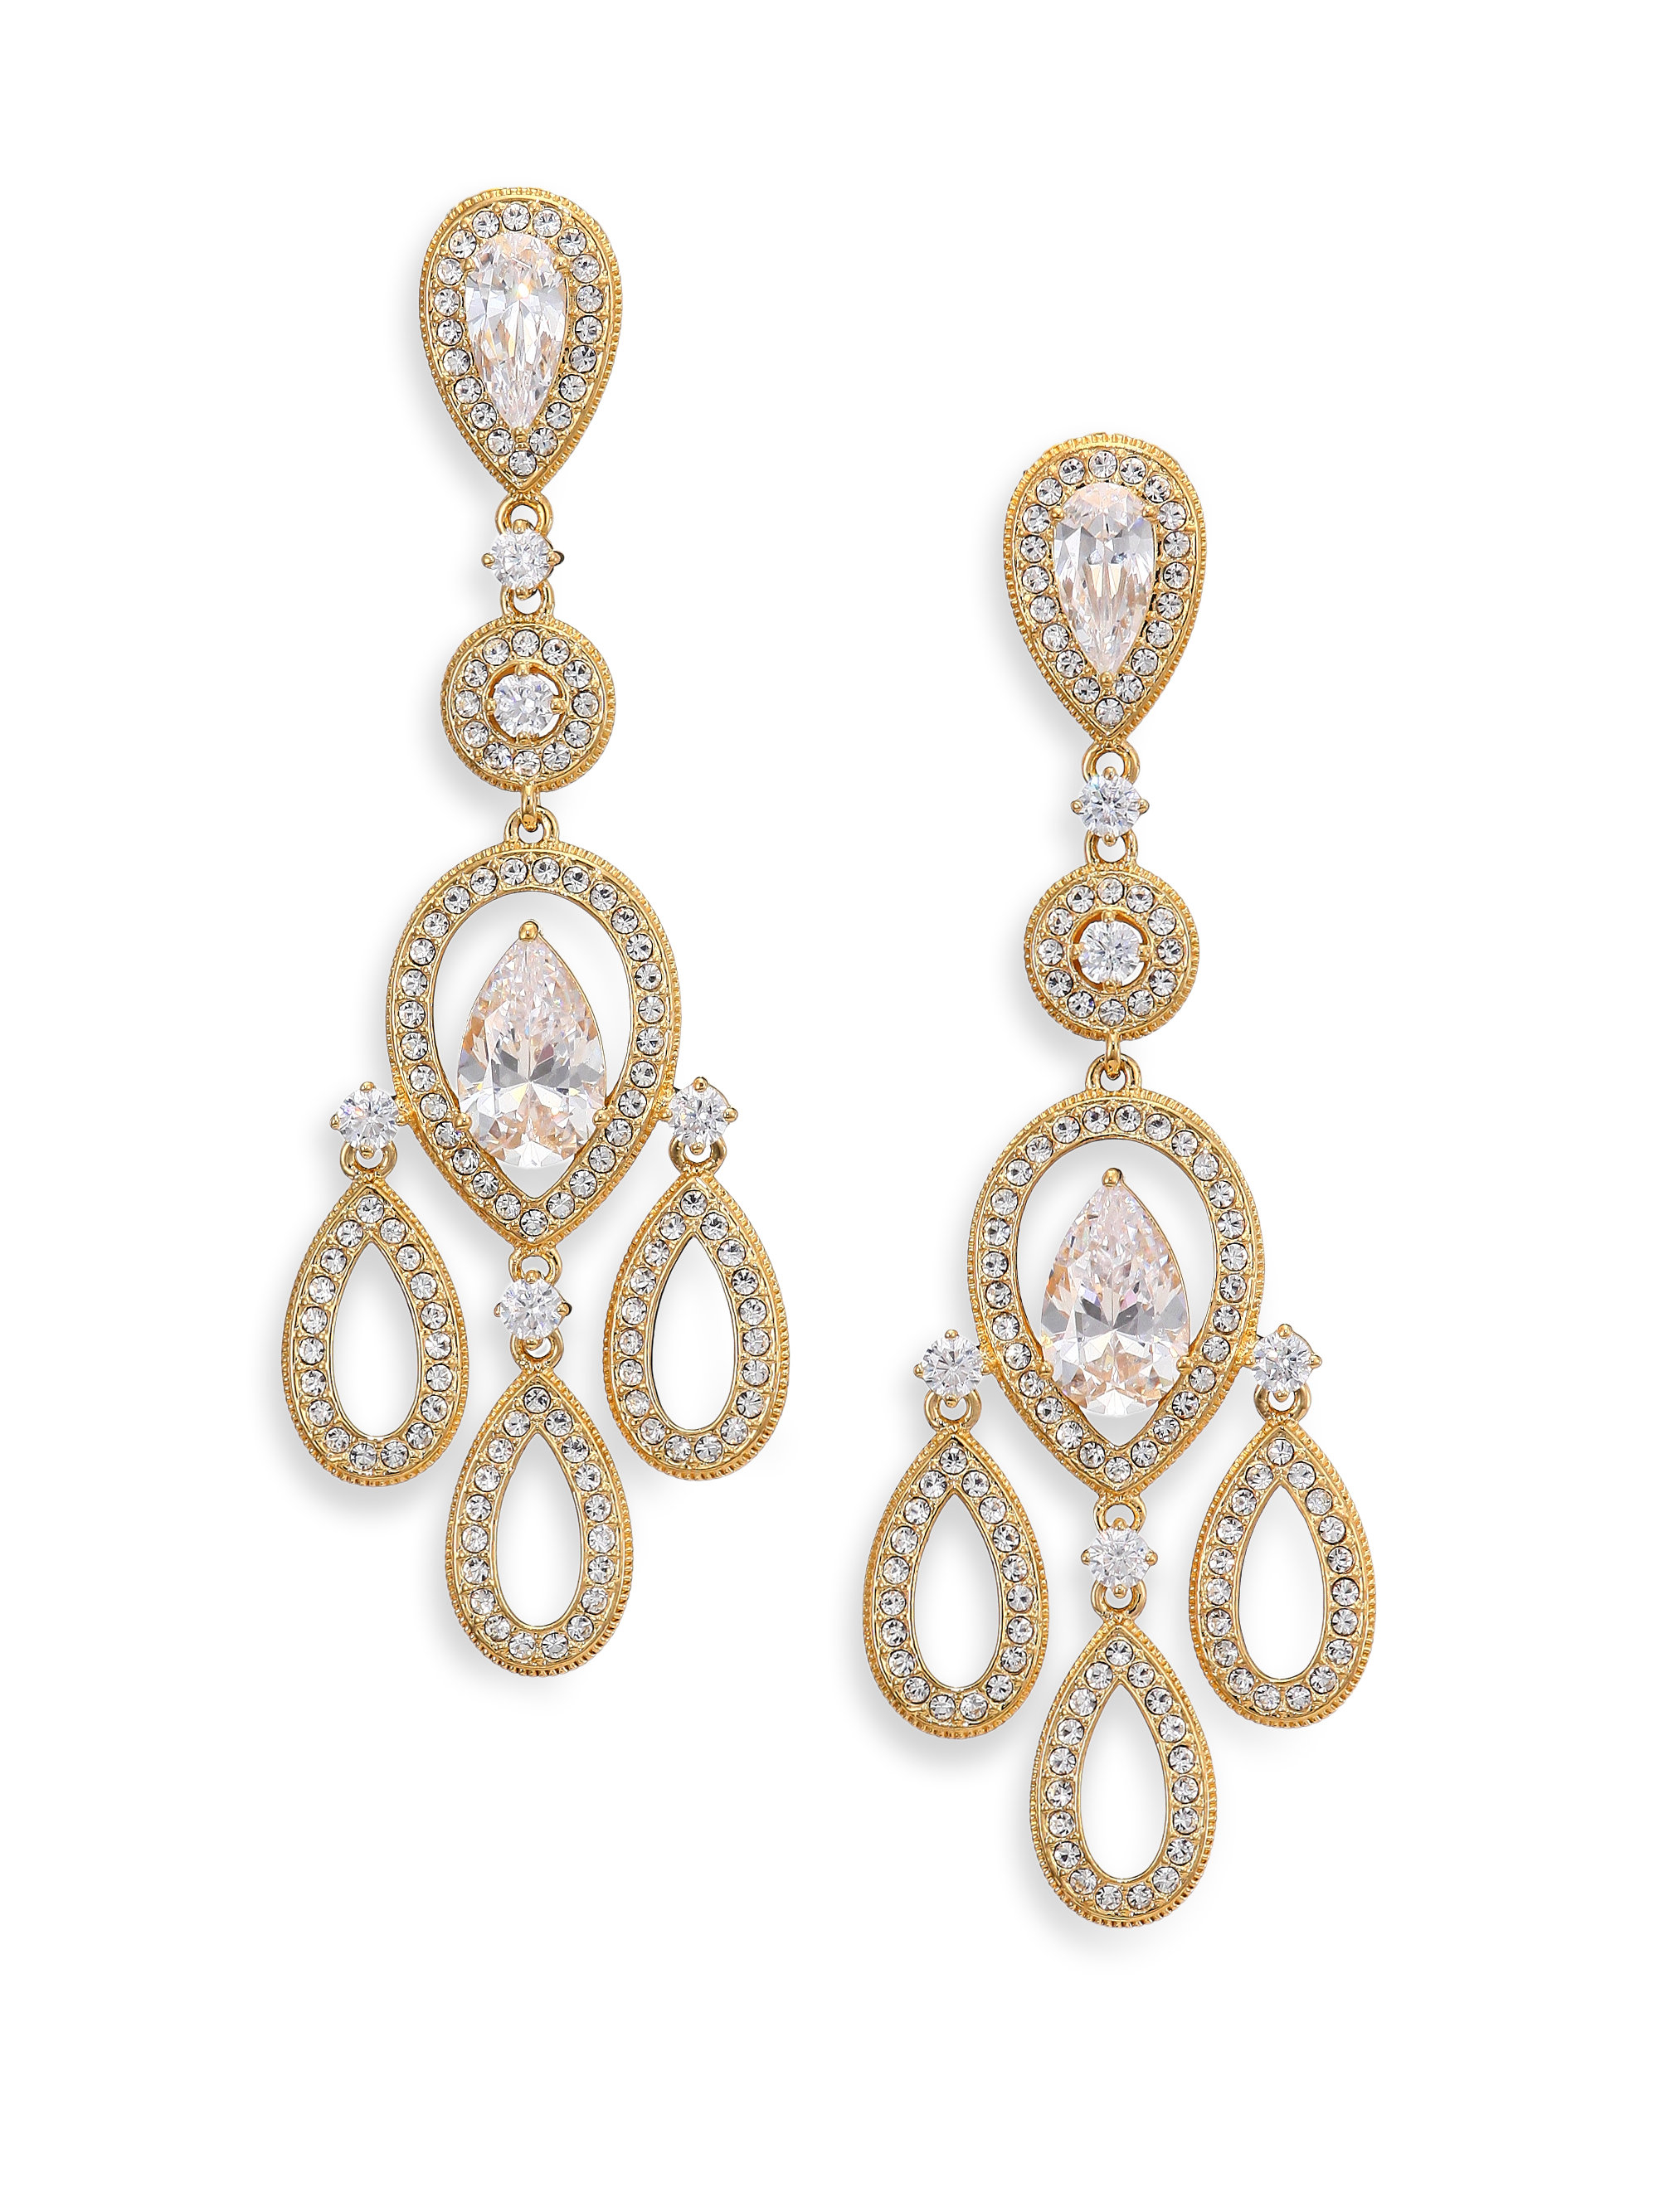 baron earrings how to get